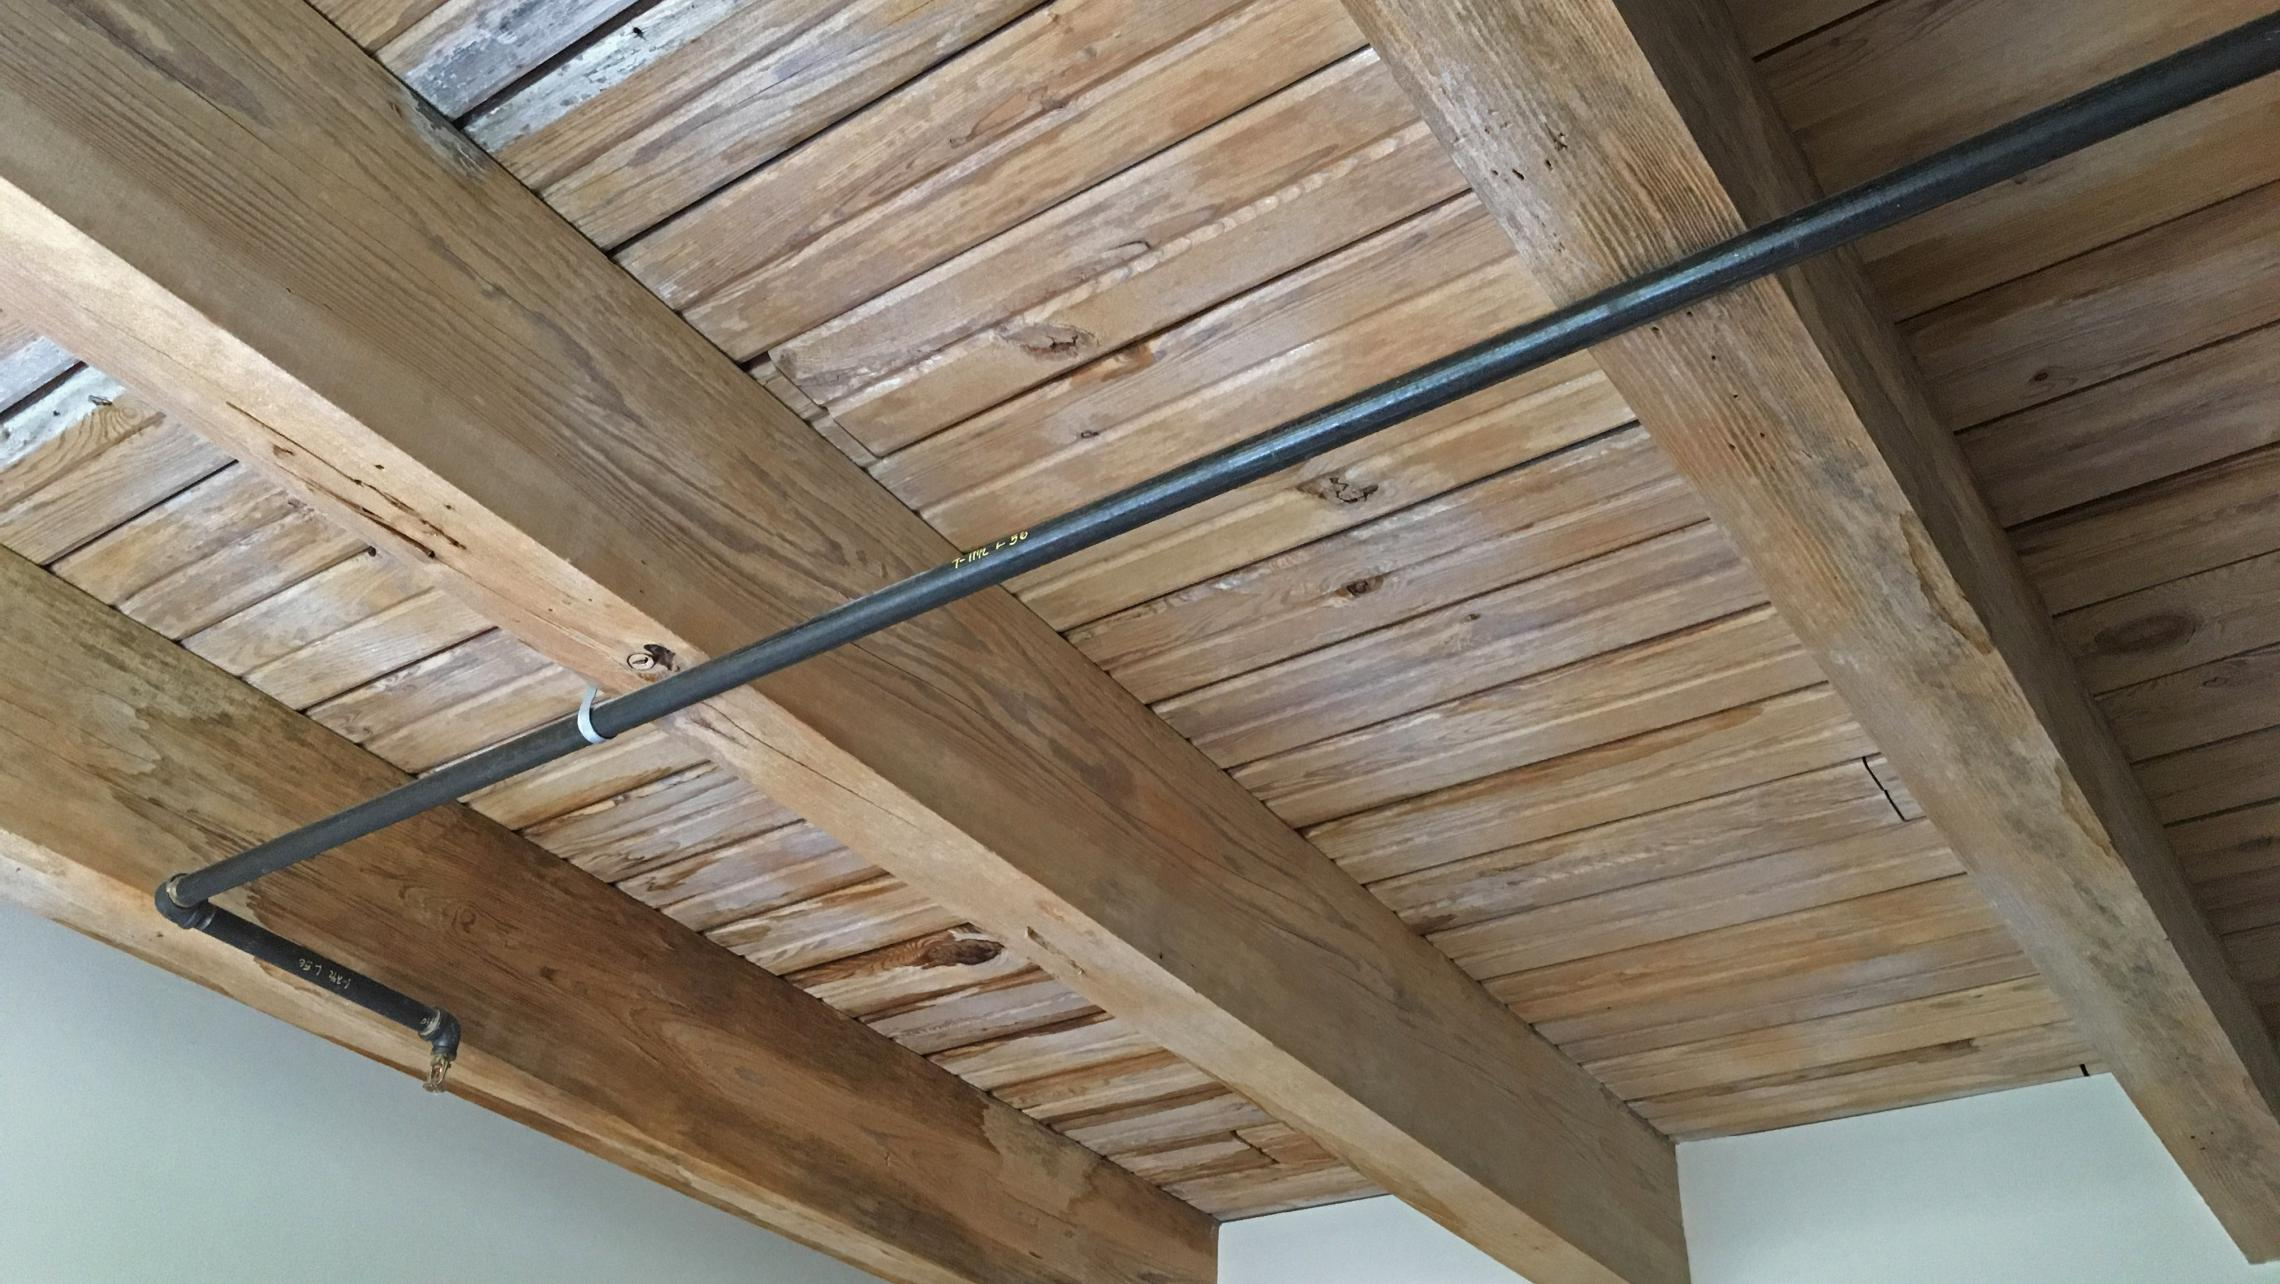 ULI Tobacco Lofts - E104 - Ceiling with Exposed Wood Beams